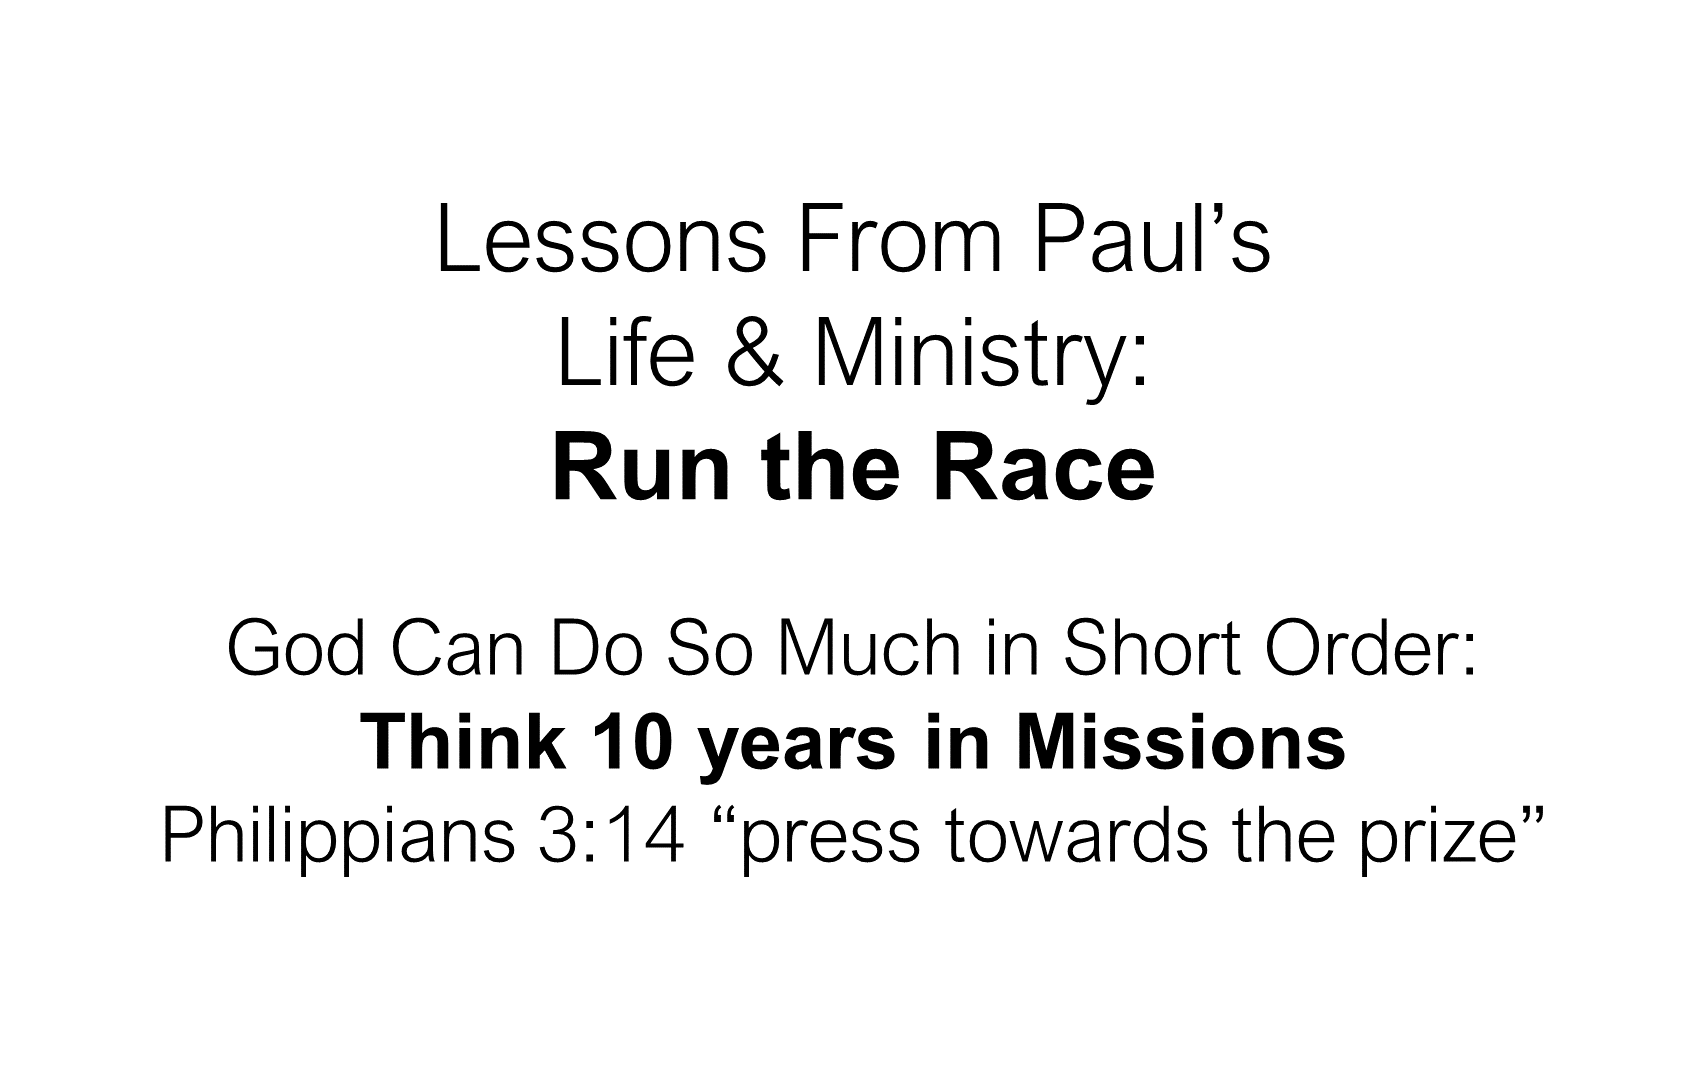 ESH-23 - The Discipline Of Disciple-Making - Paul - Used By God To Change The World (27)